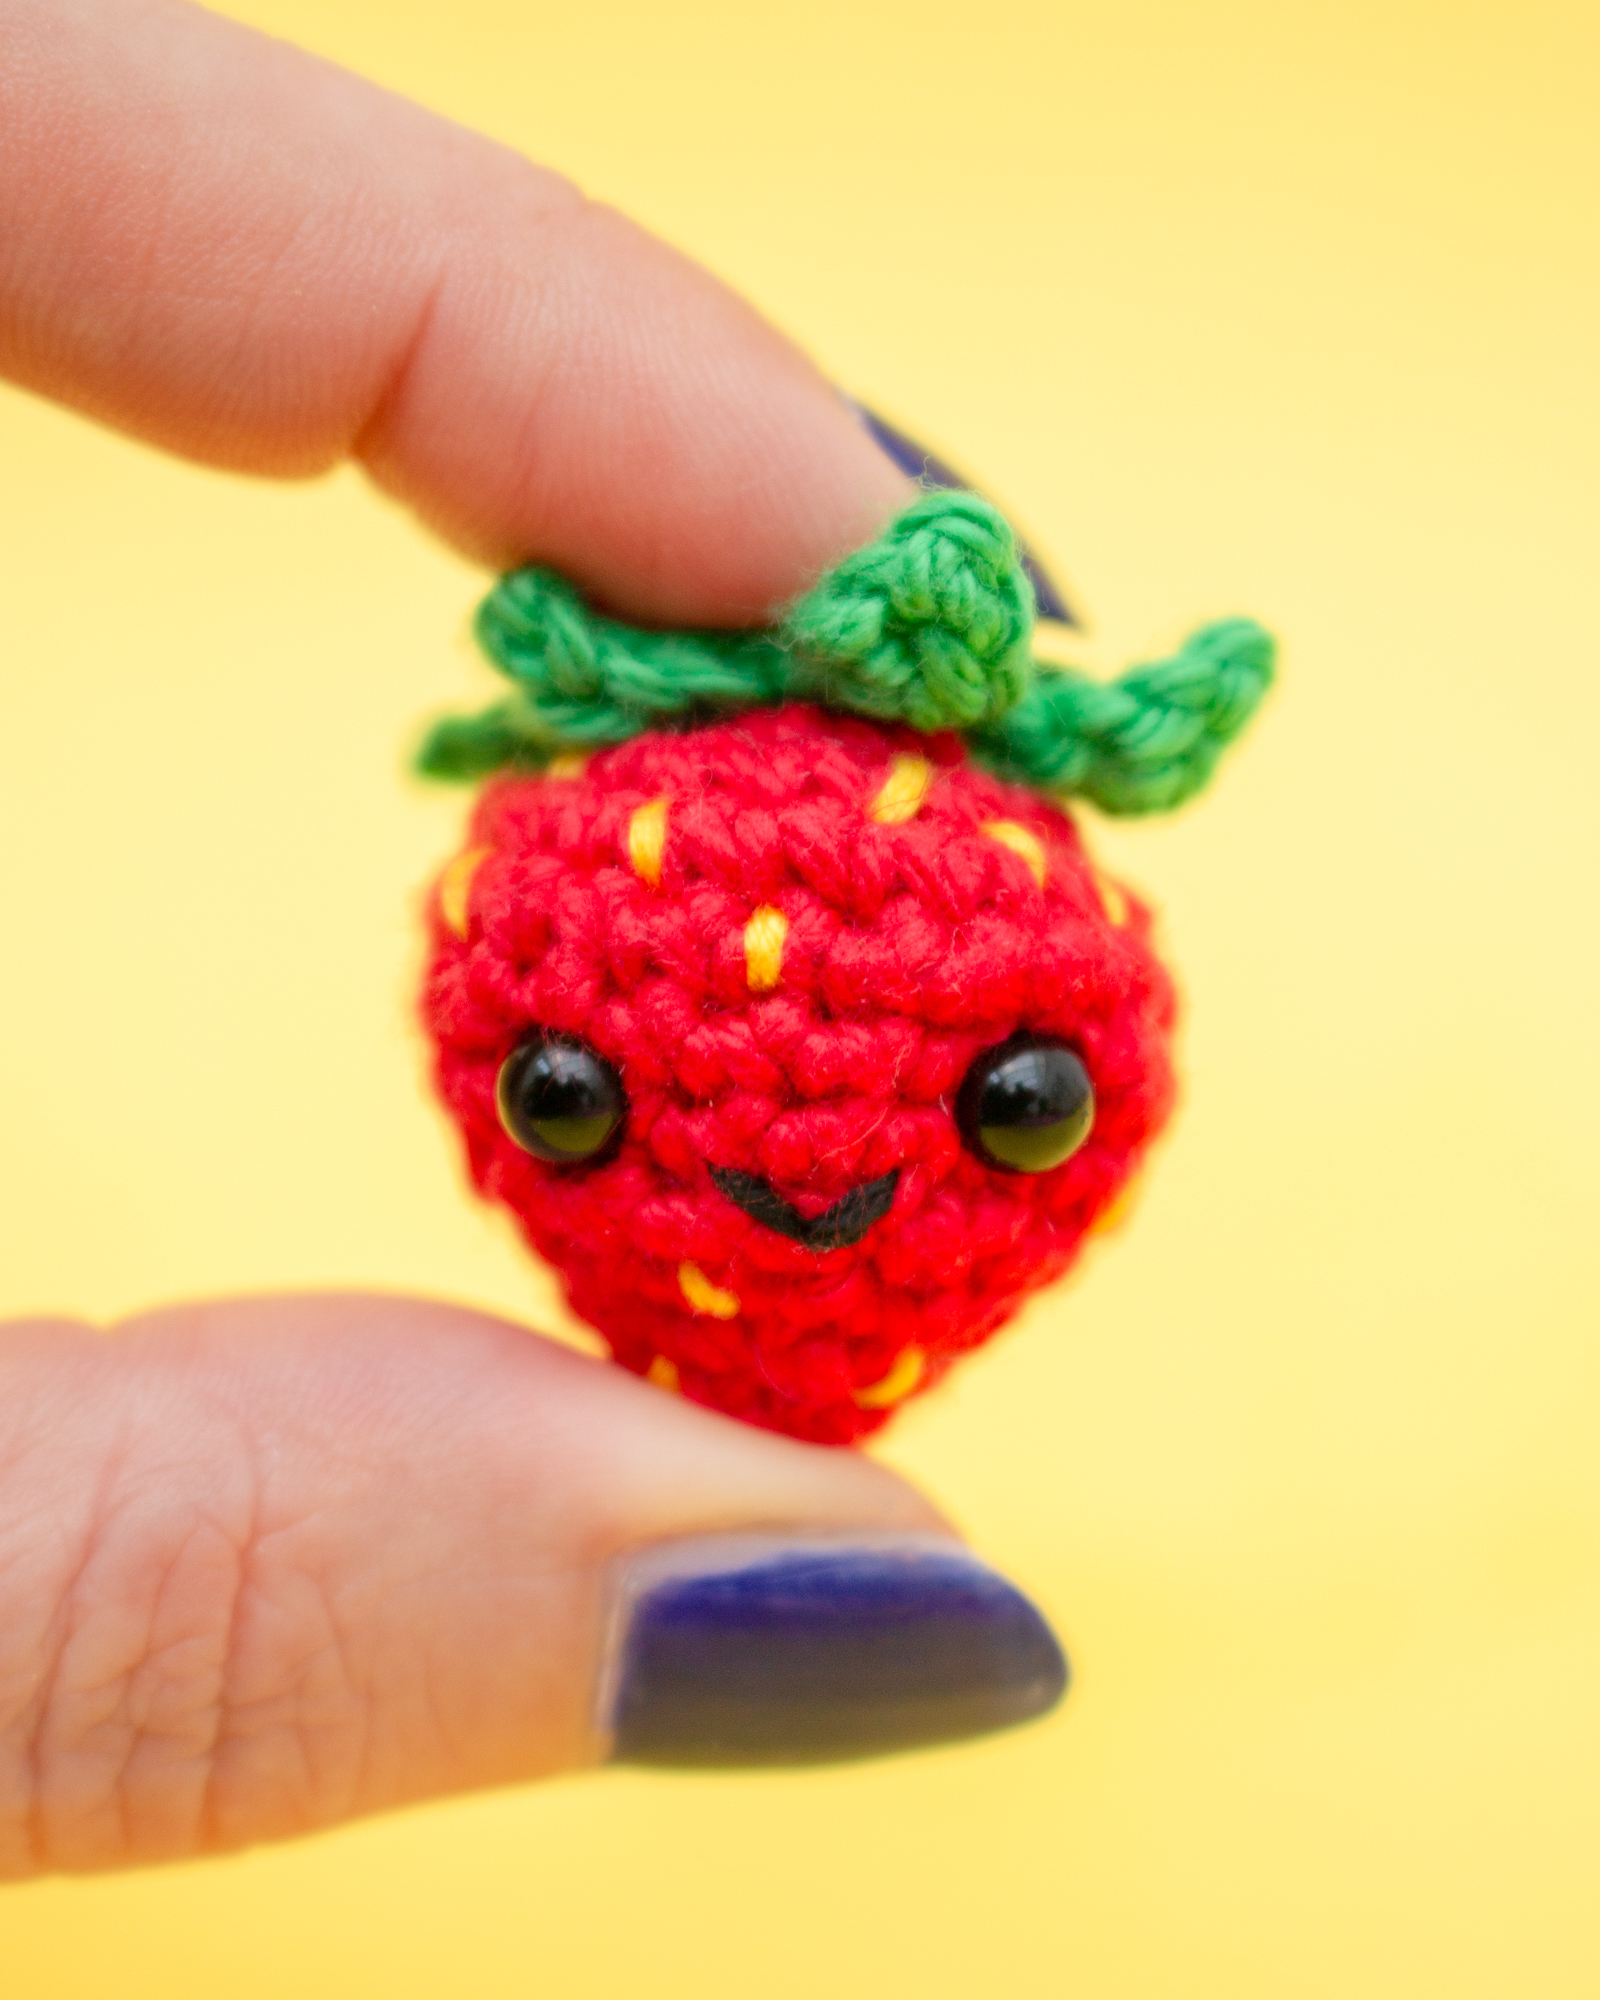 Steve the Strawberry